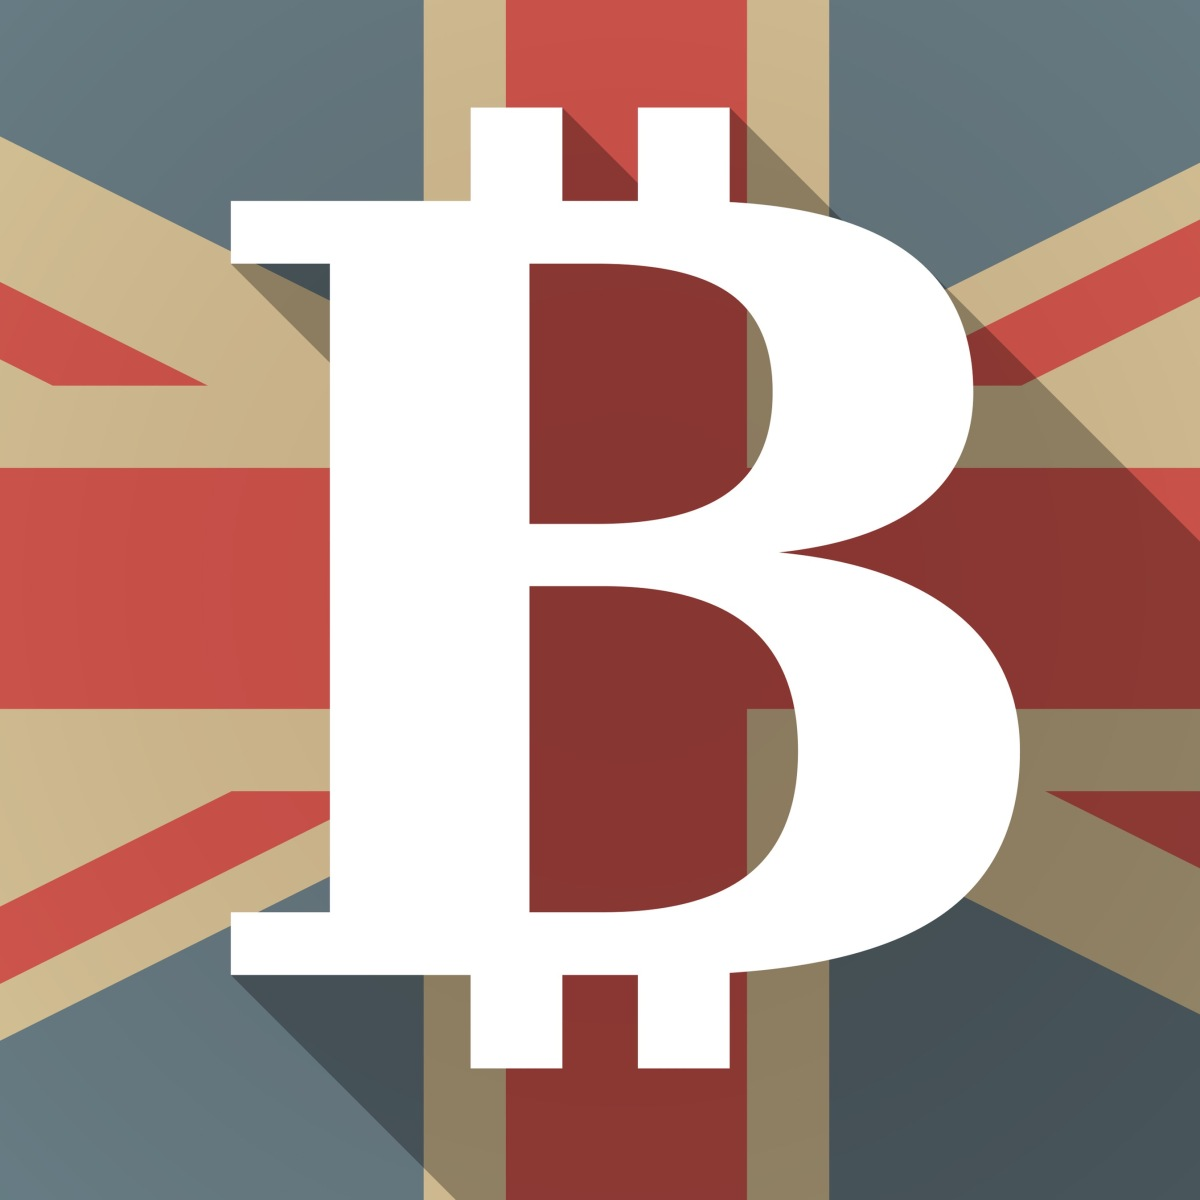 UK flag icon with a bitcoin sign